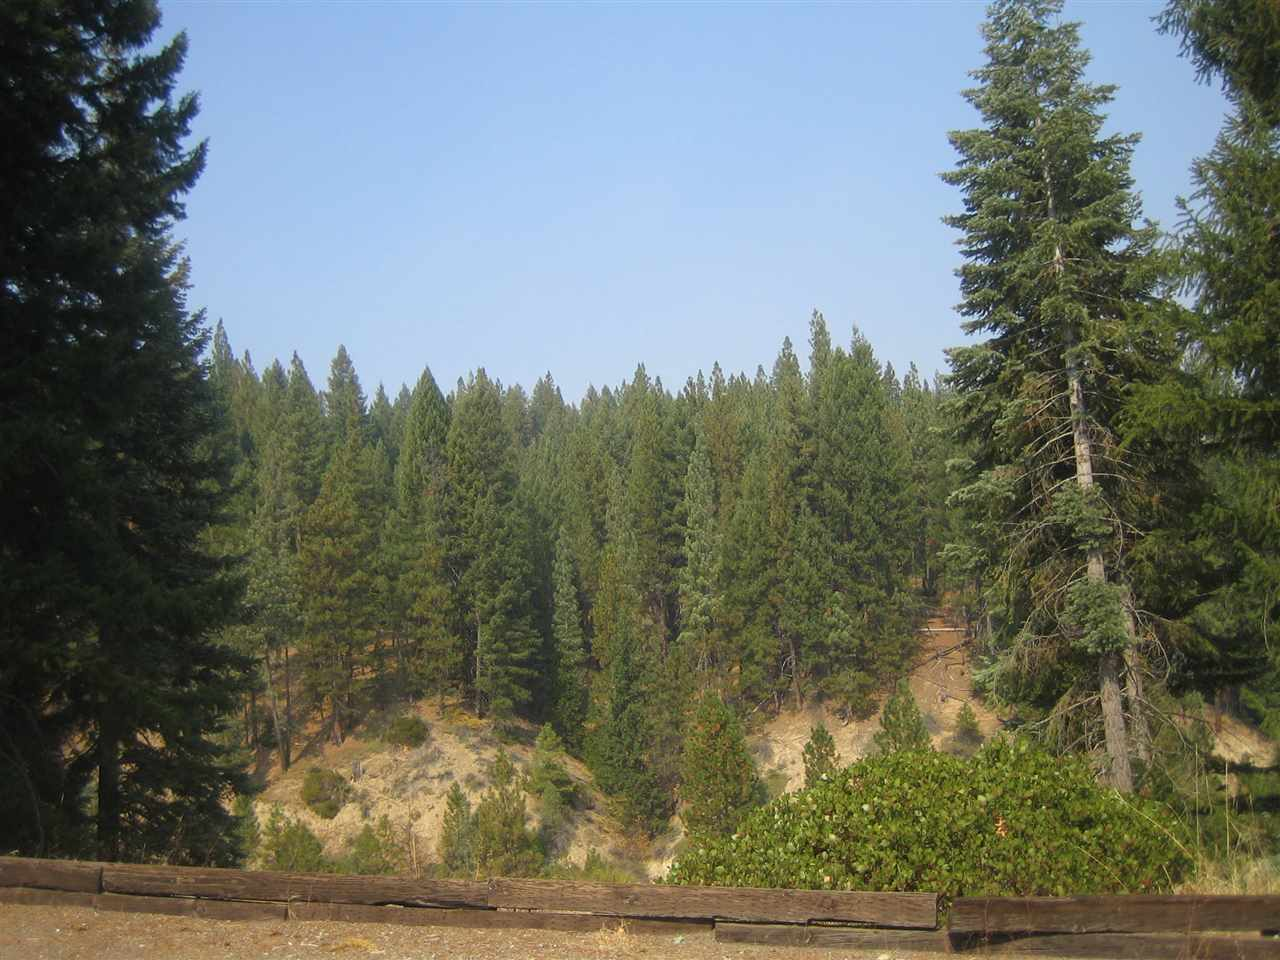 Acreage for Active at 500 Poplar Valley Road Blairsden, California 96103 United States